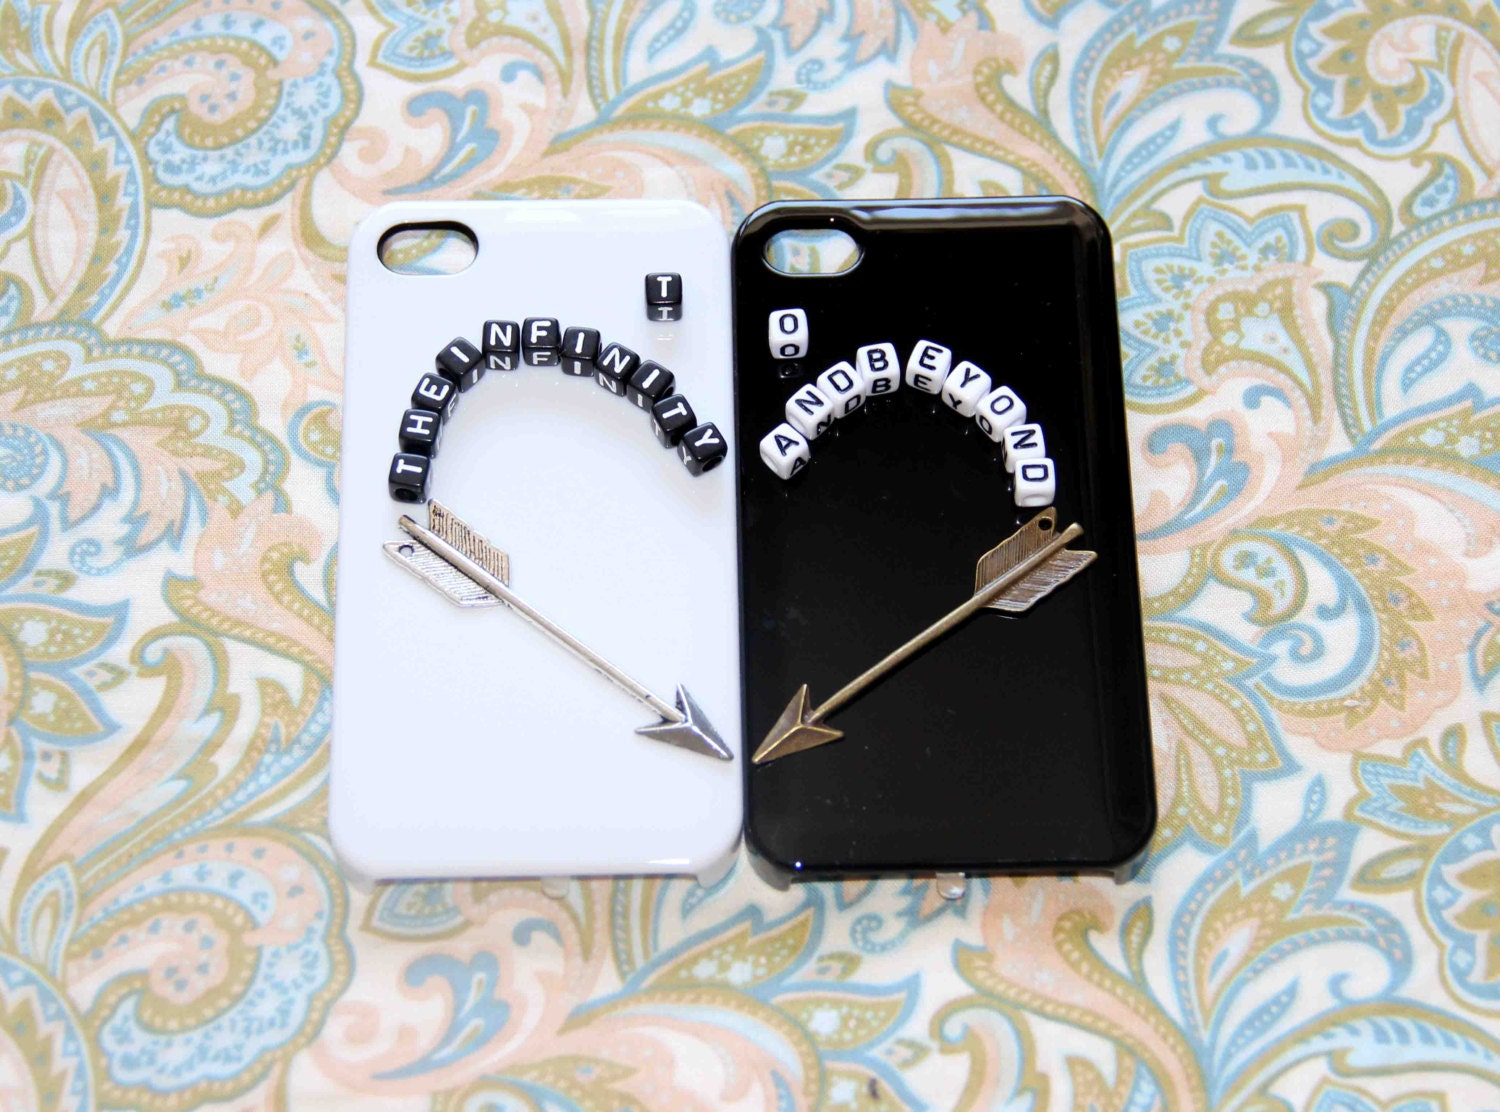 Matching Iphone Cases For SistersMatching Iphone Cases For Sisters